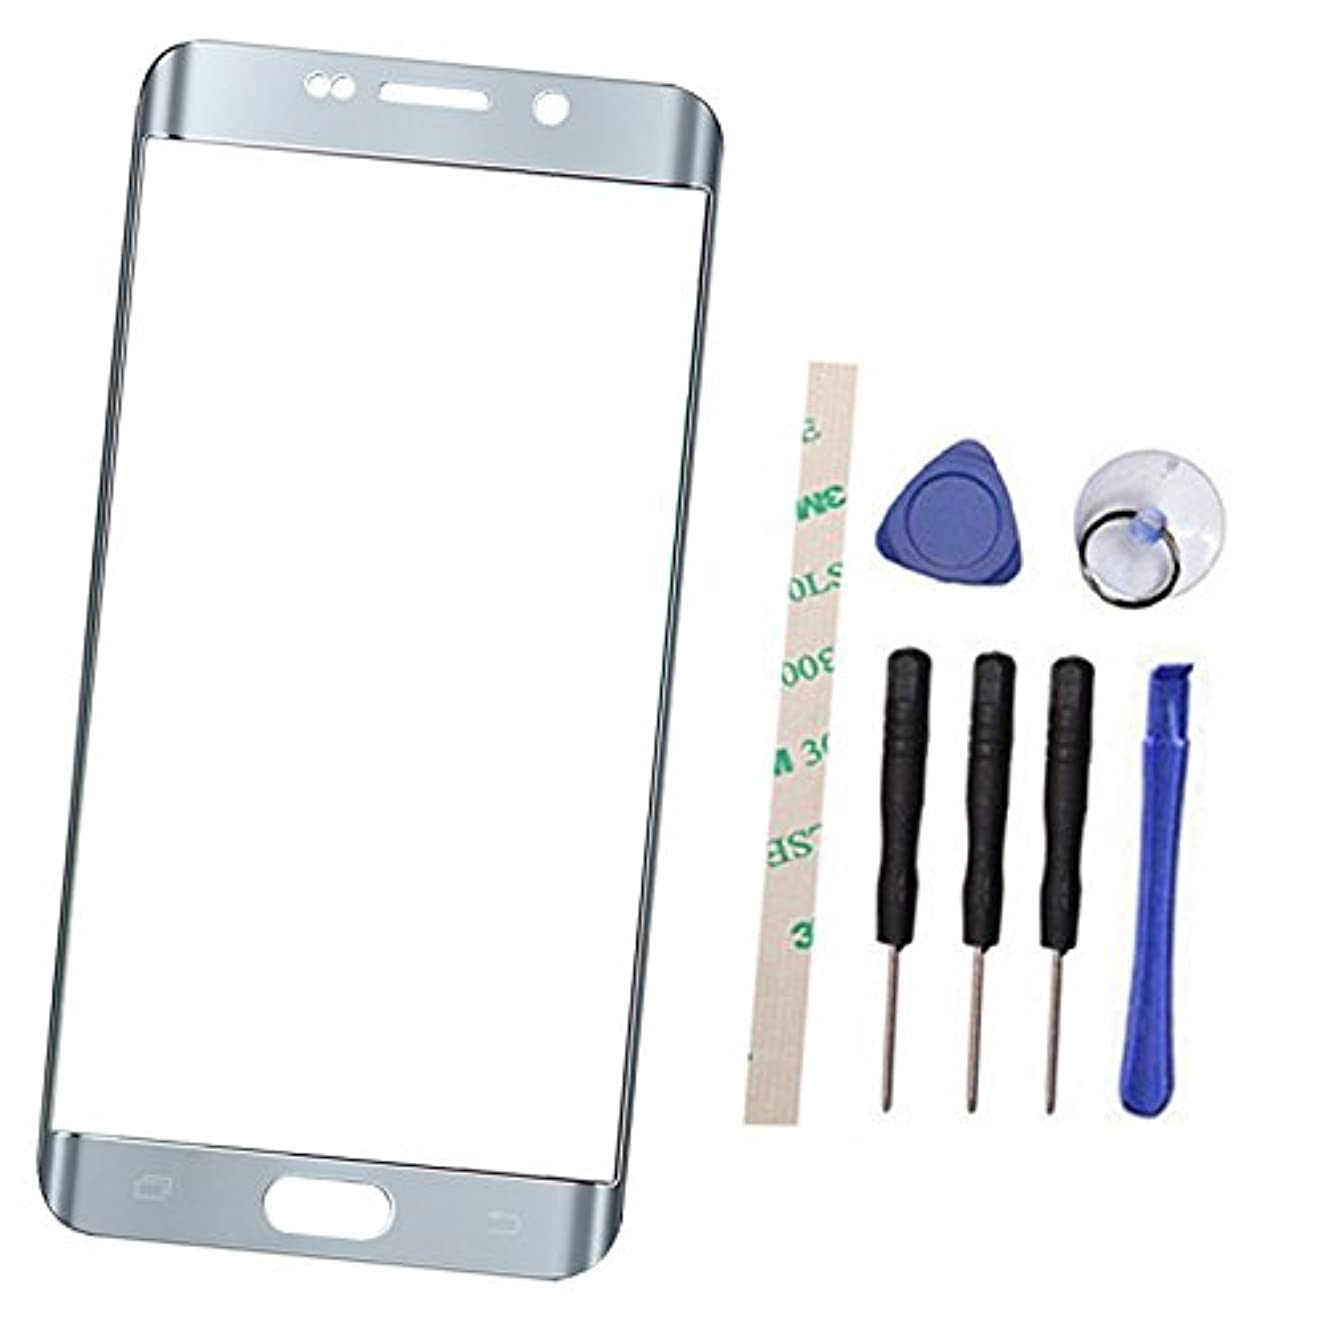 Outer Screen Front Glass Lens Replacement For Galaxy S6 EDGE PLUS SM-G9280 G9287 G928V G928P G928R4 G928F G928G G928T G928A G928I (Not LCD and Not digitizer) with Adhesive Preinstalled (silver)